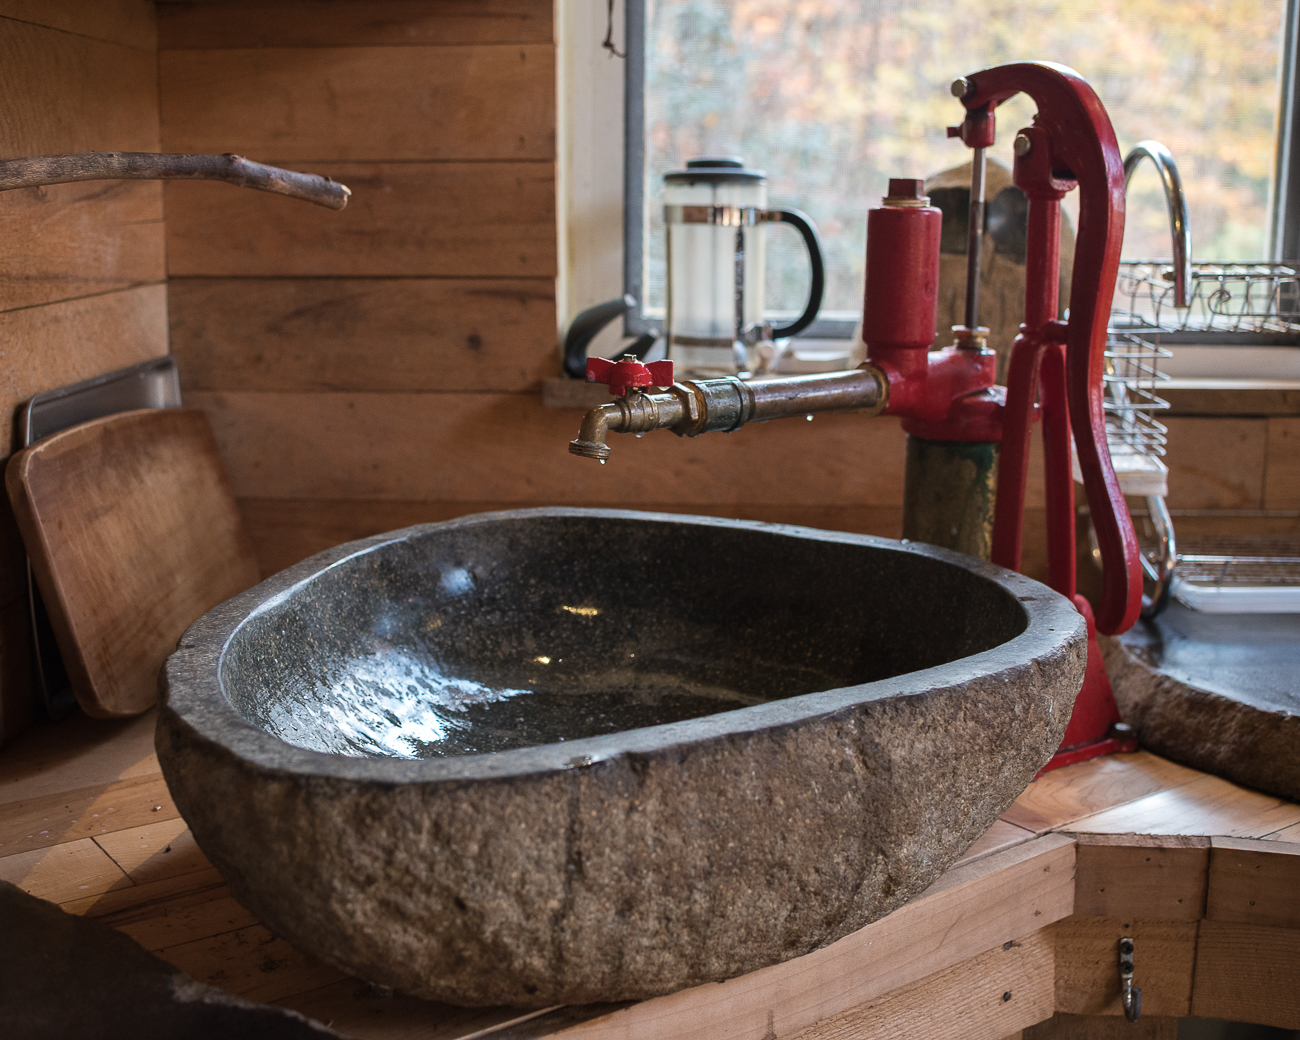 While there is no running water in the cabin, hand-pumps are available to draw well water up into the cabin. / Image: Phil Armstrong, Cincinnati Refined // Published: 11.14.17